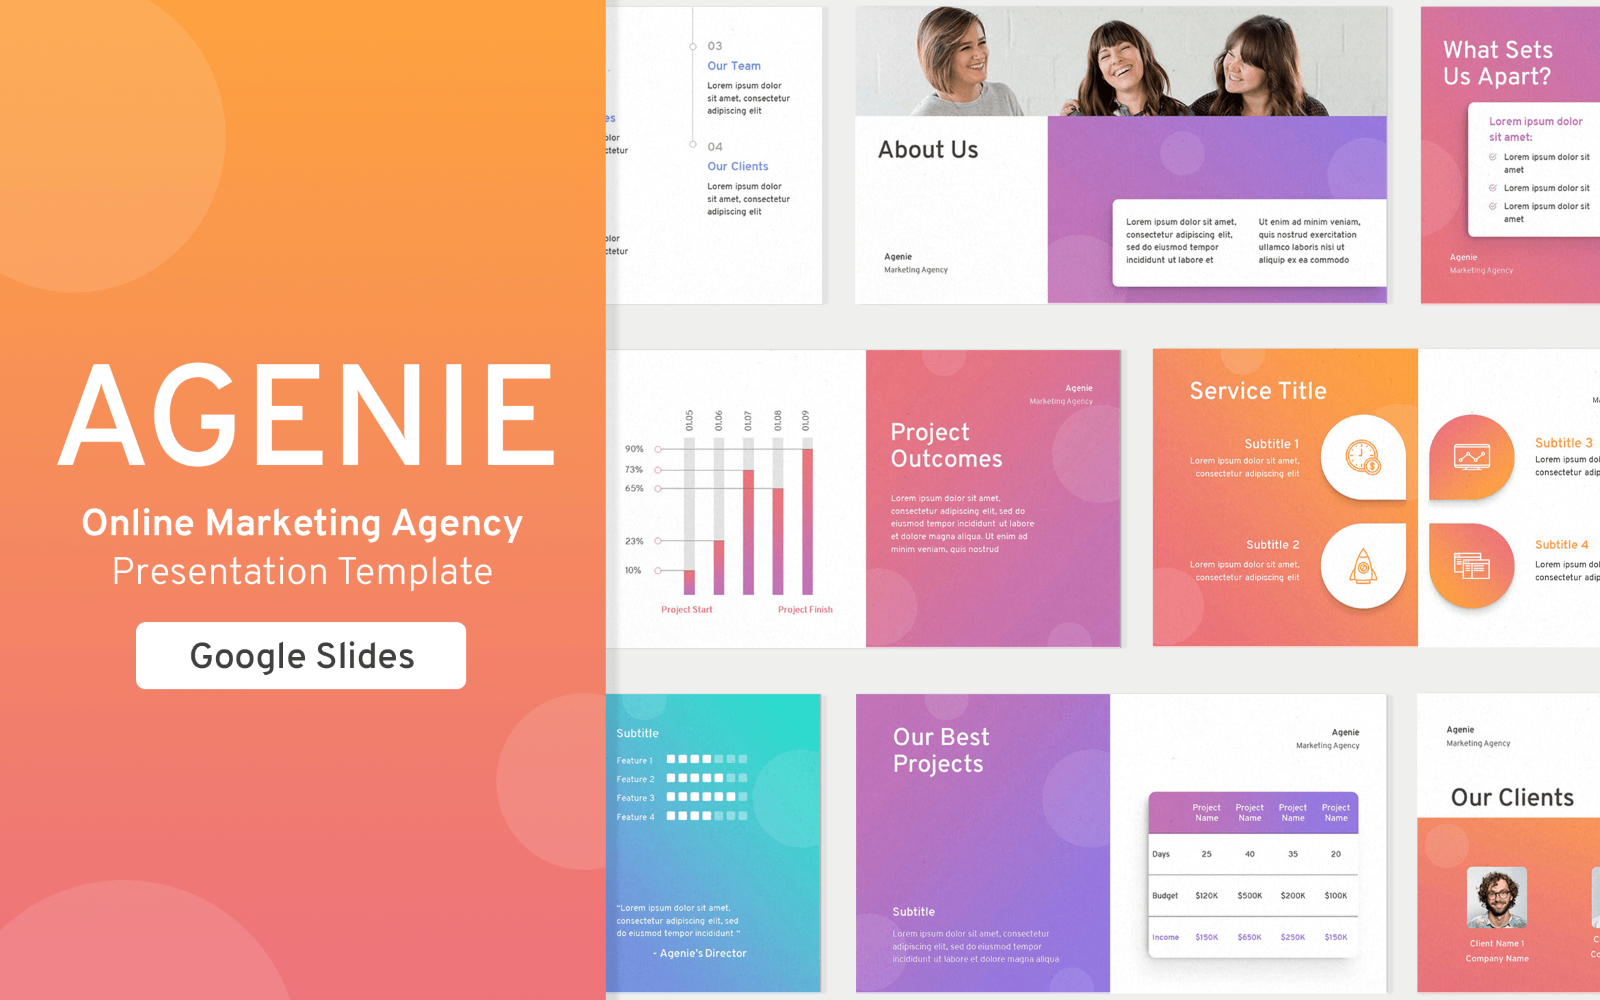 Online Marketing Agency Presentation Template Google Slides 123926